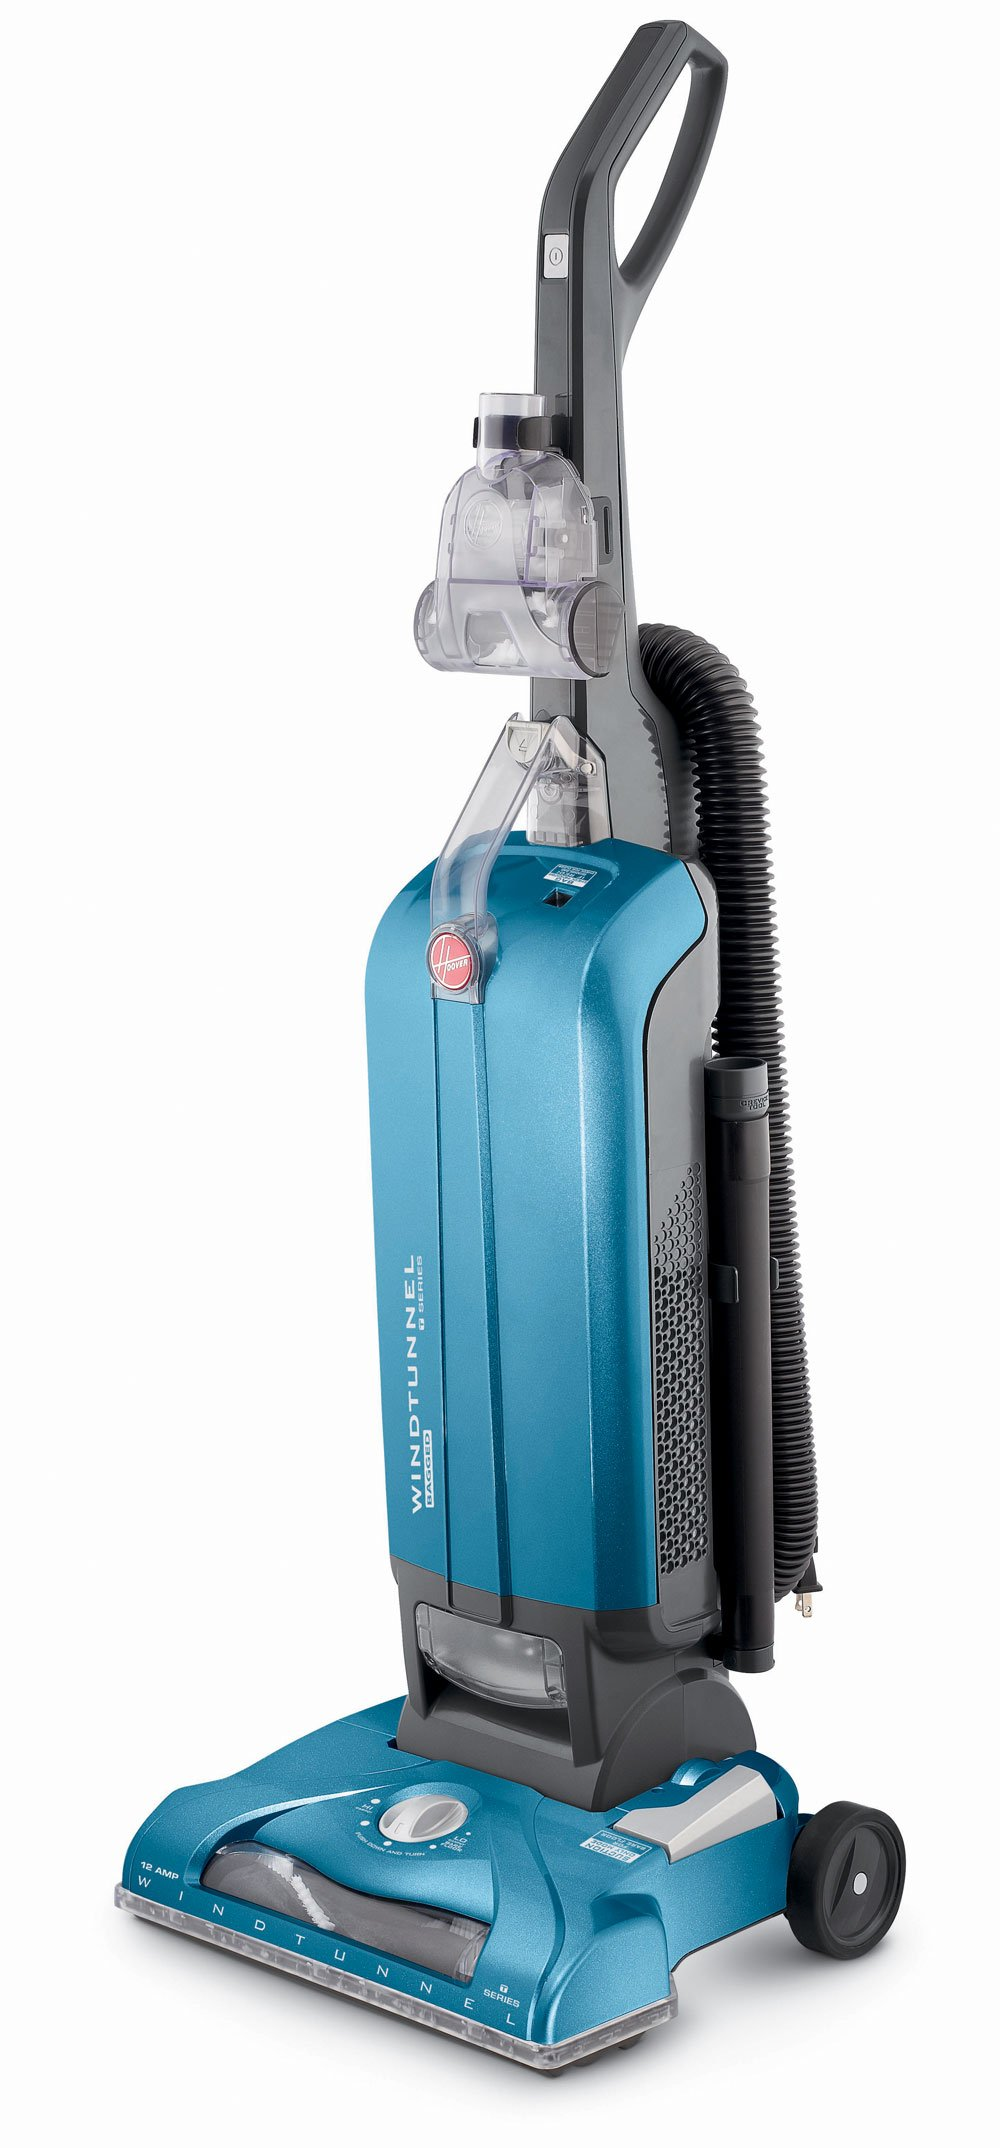 Hoover Vacuum Cleaner T-Series WindTunnel Corded Bagged Upright Vacuum UH30300 by Hoover (Image #2)